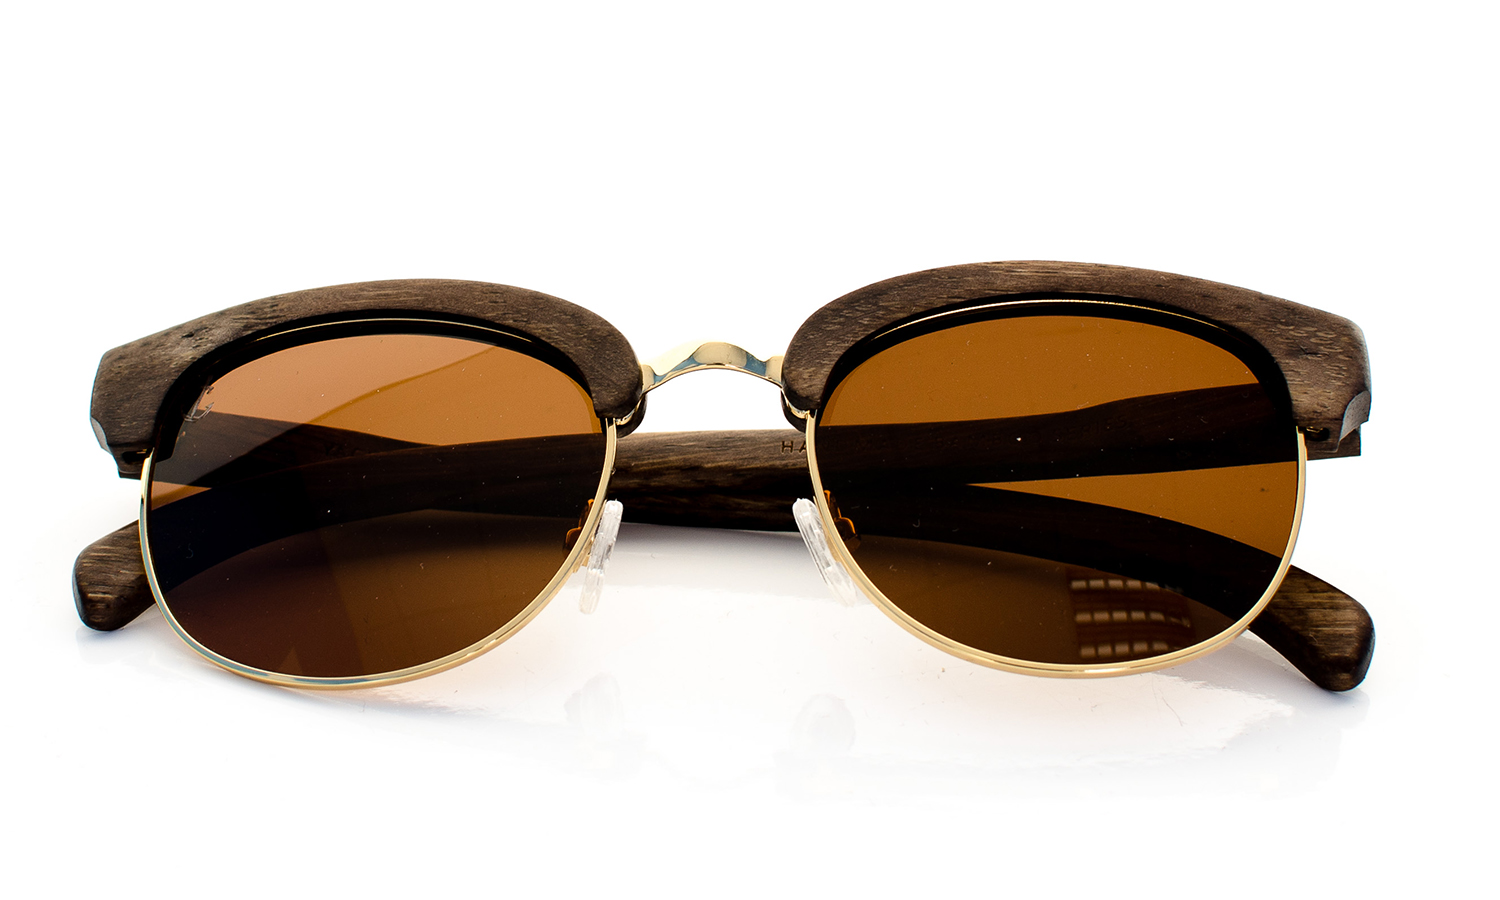 YachtMaster Handcrafted Wooden Eyewear Brown Bamboo Wood - Top View